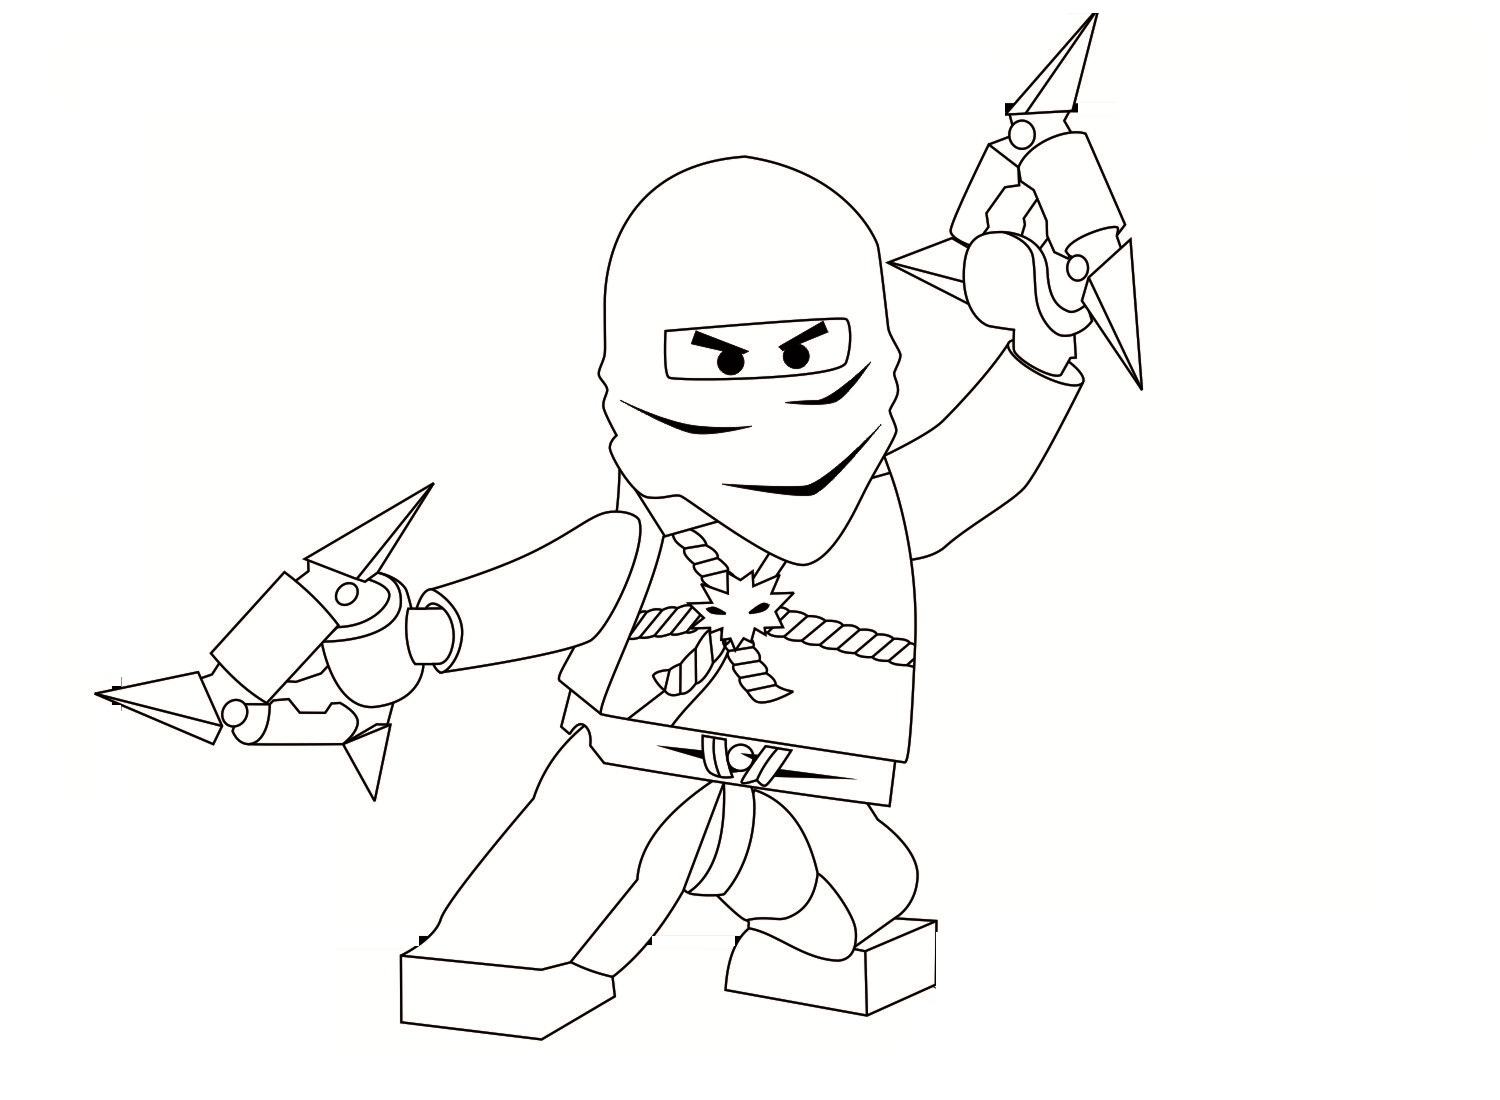 jay ninjago printable coloring pages - photo#14